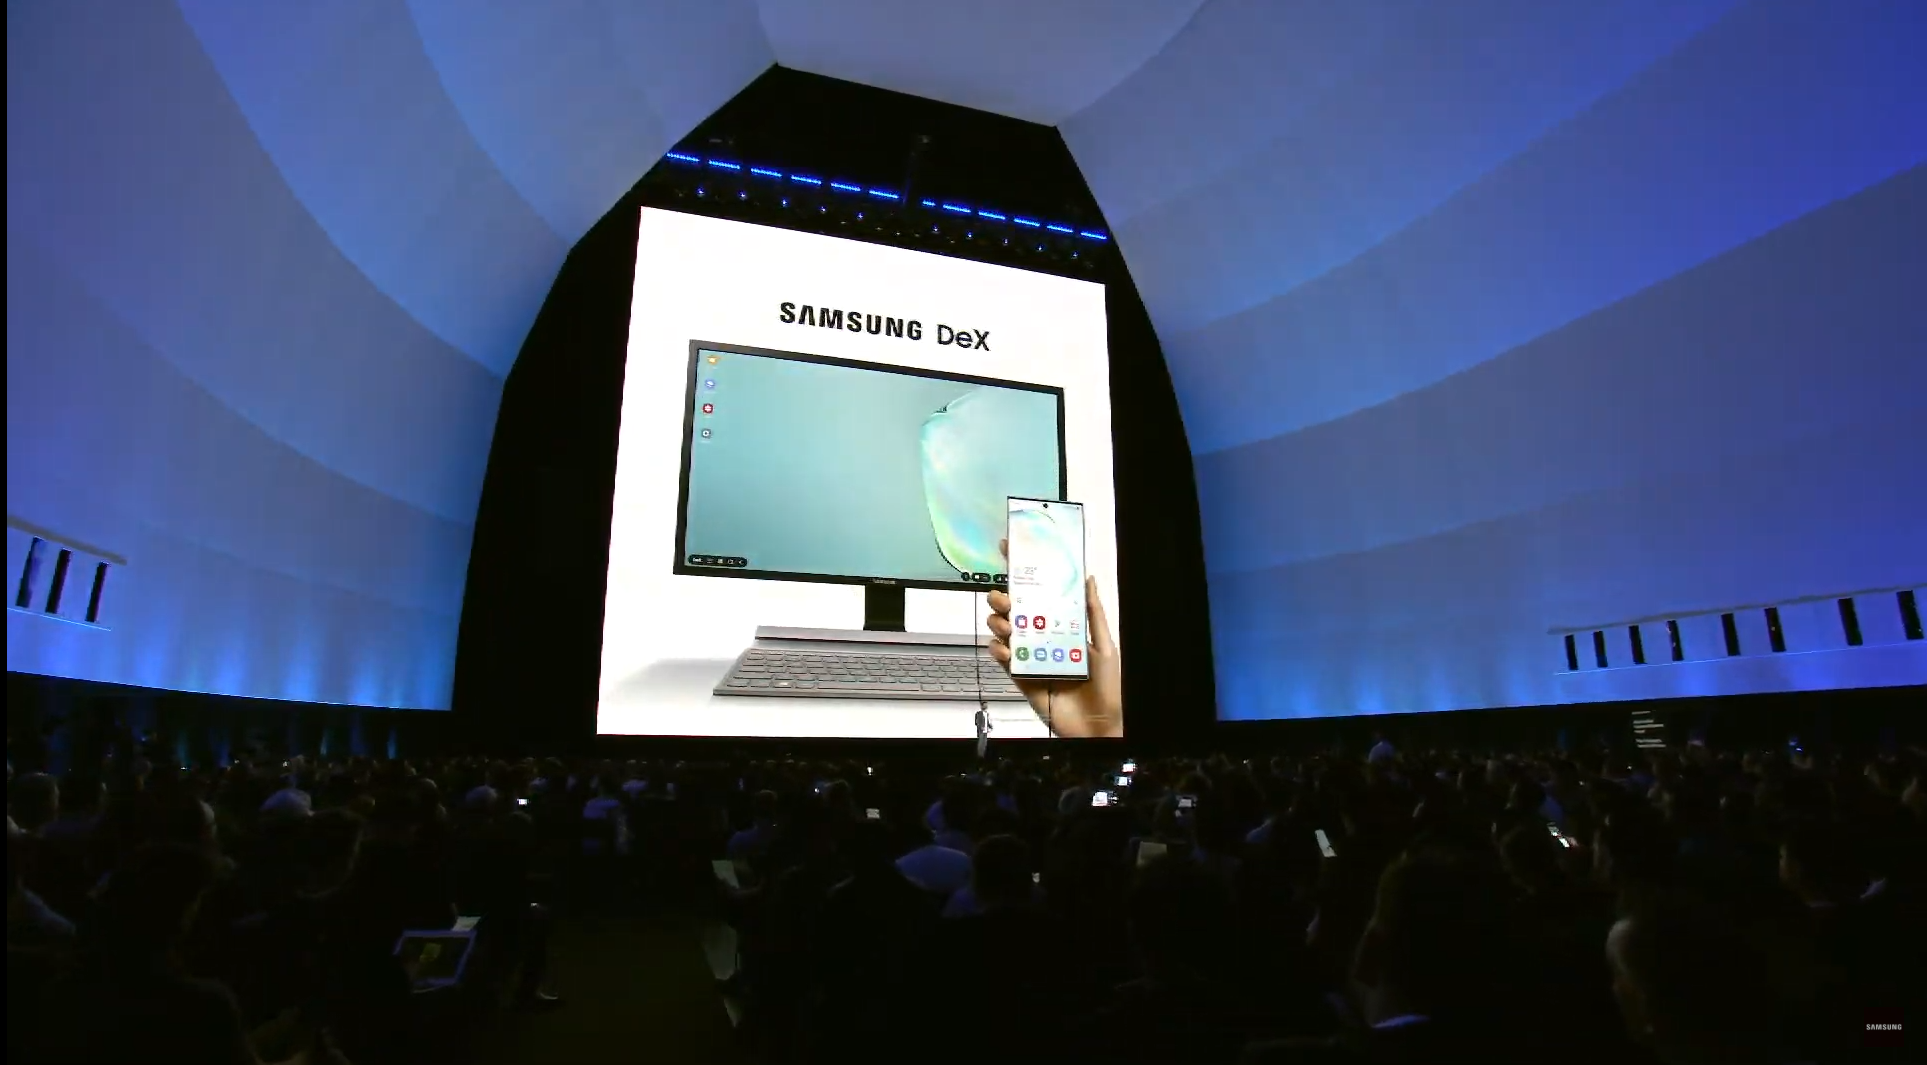 Samsung demos Microsoft PC features at Unpacked 2019